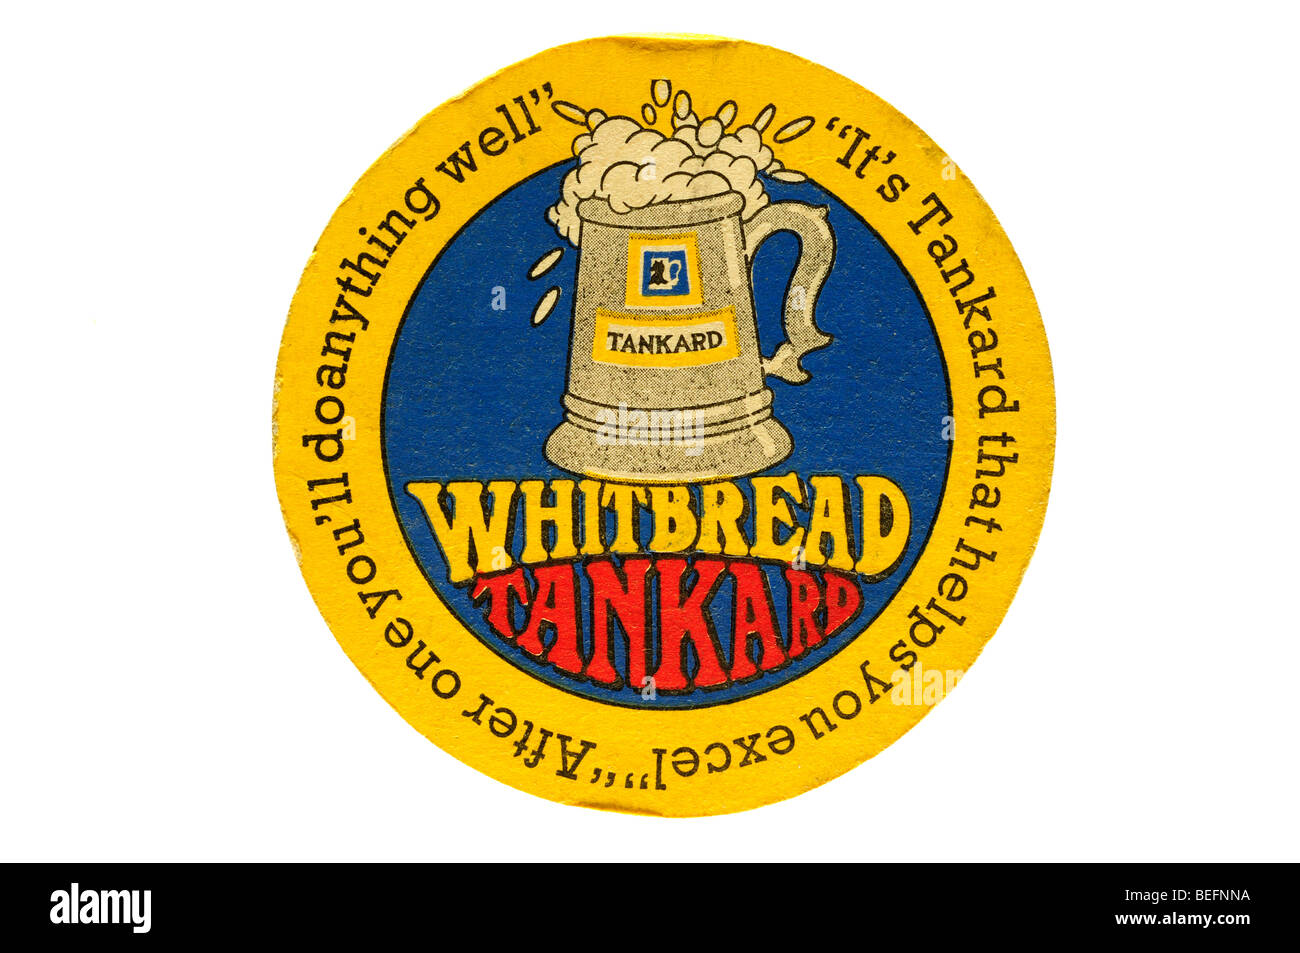 whitbread tankard its tankard that helps you excel after one youll do anything well - Stock Image